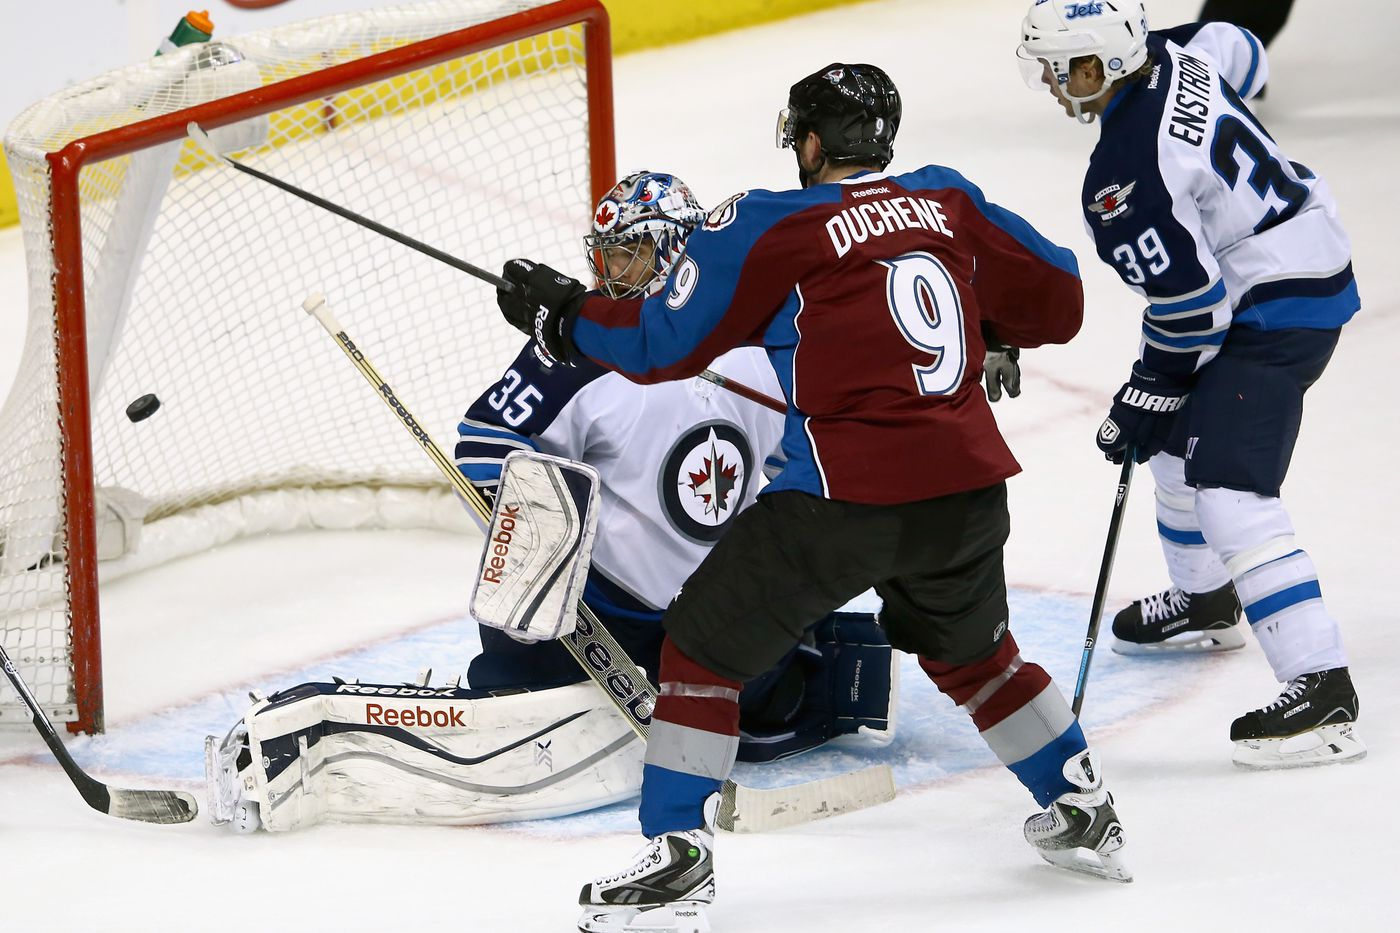 Duchene Leads Depleted Avs To An Overtime Victory In A Dogfight With